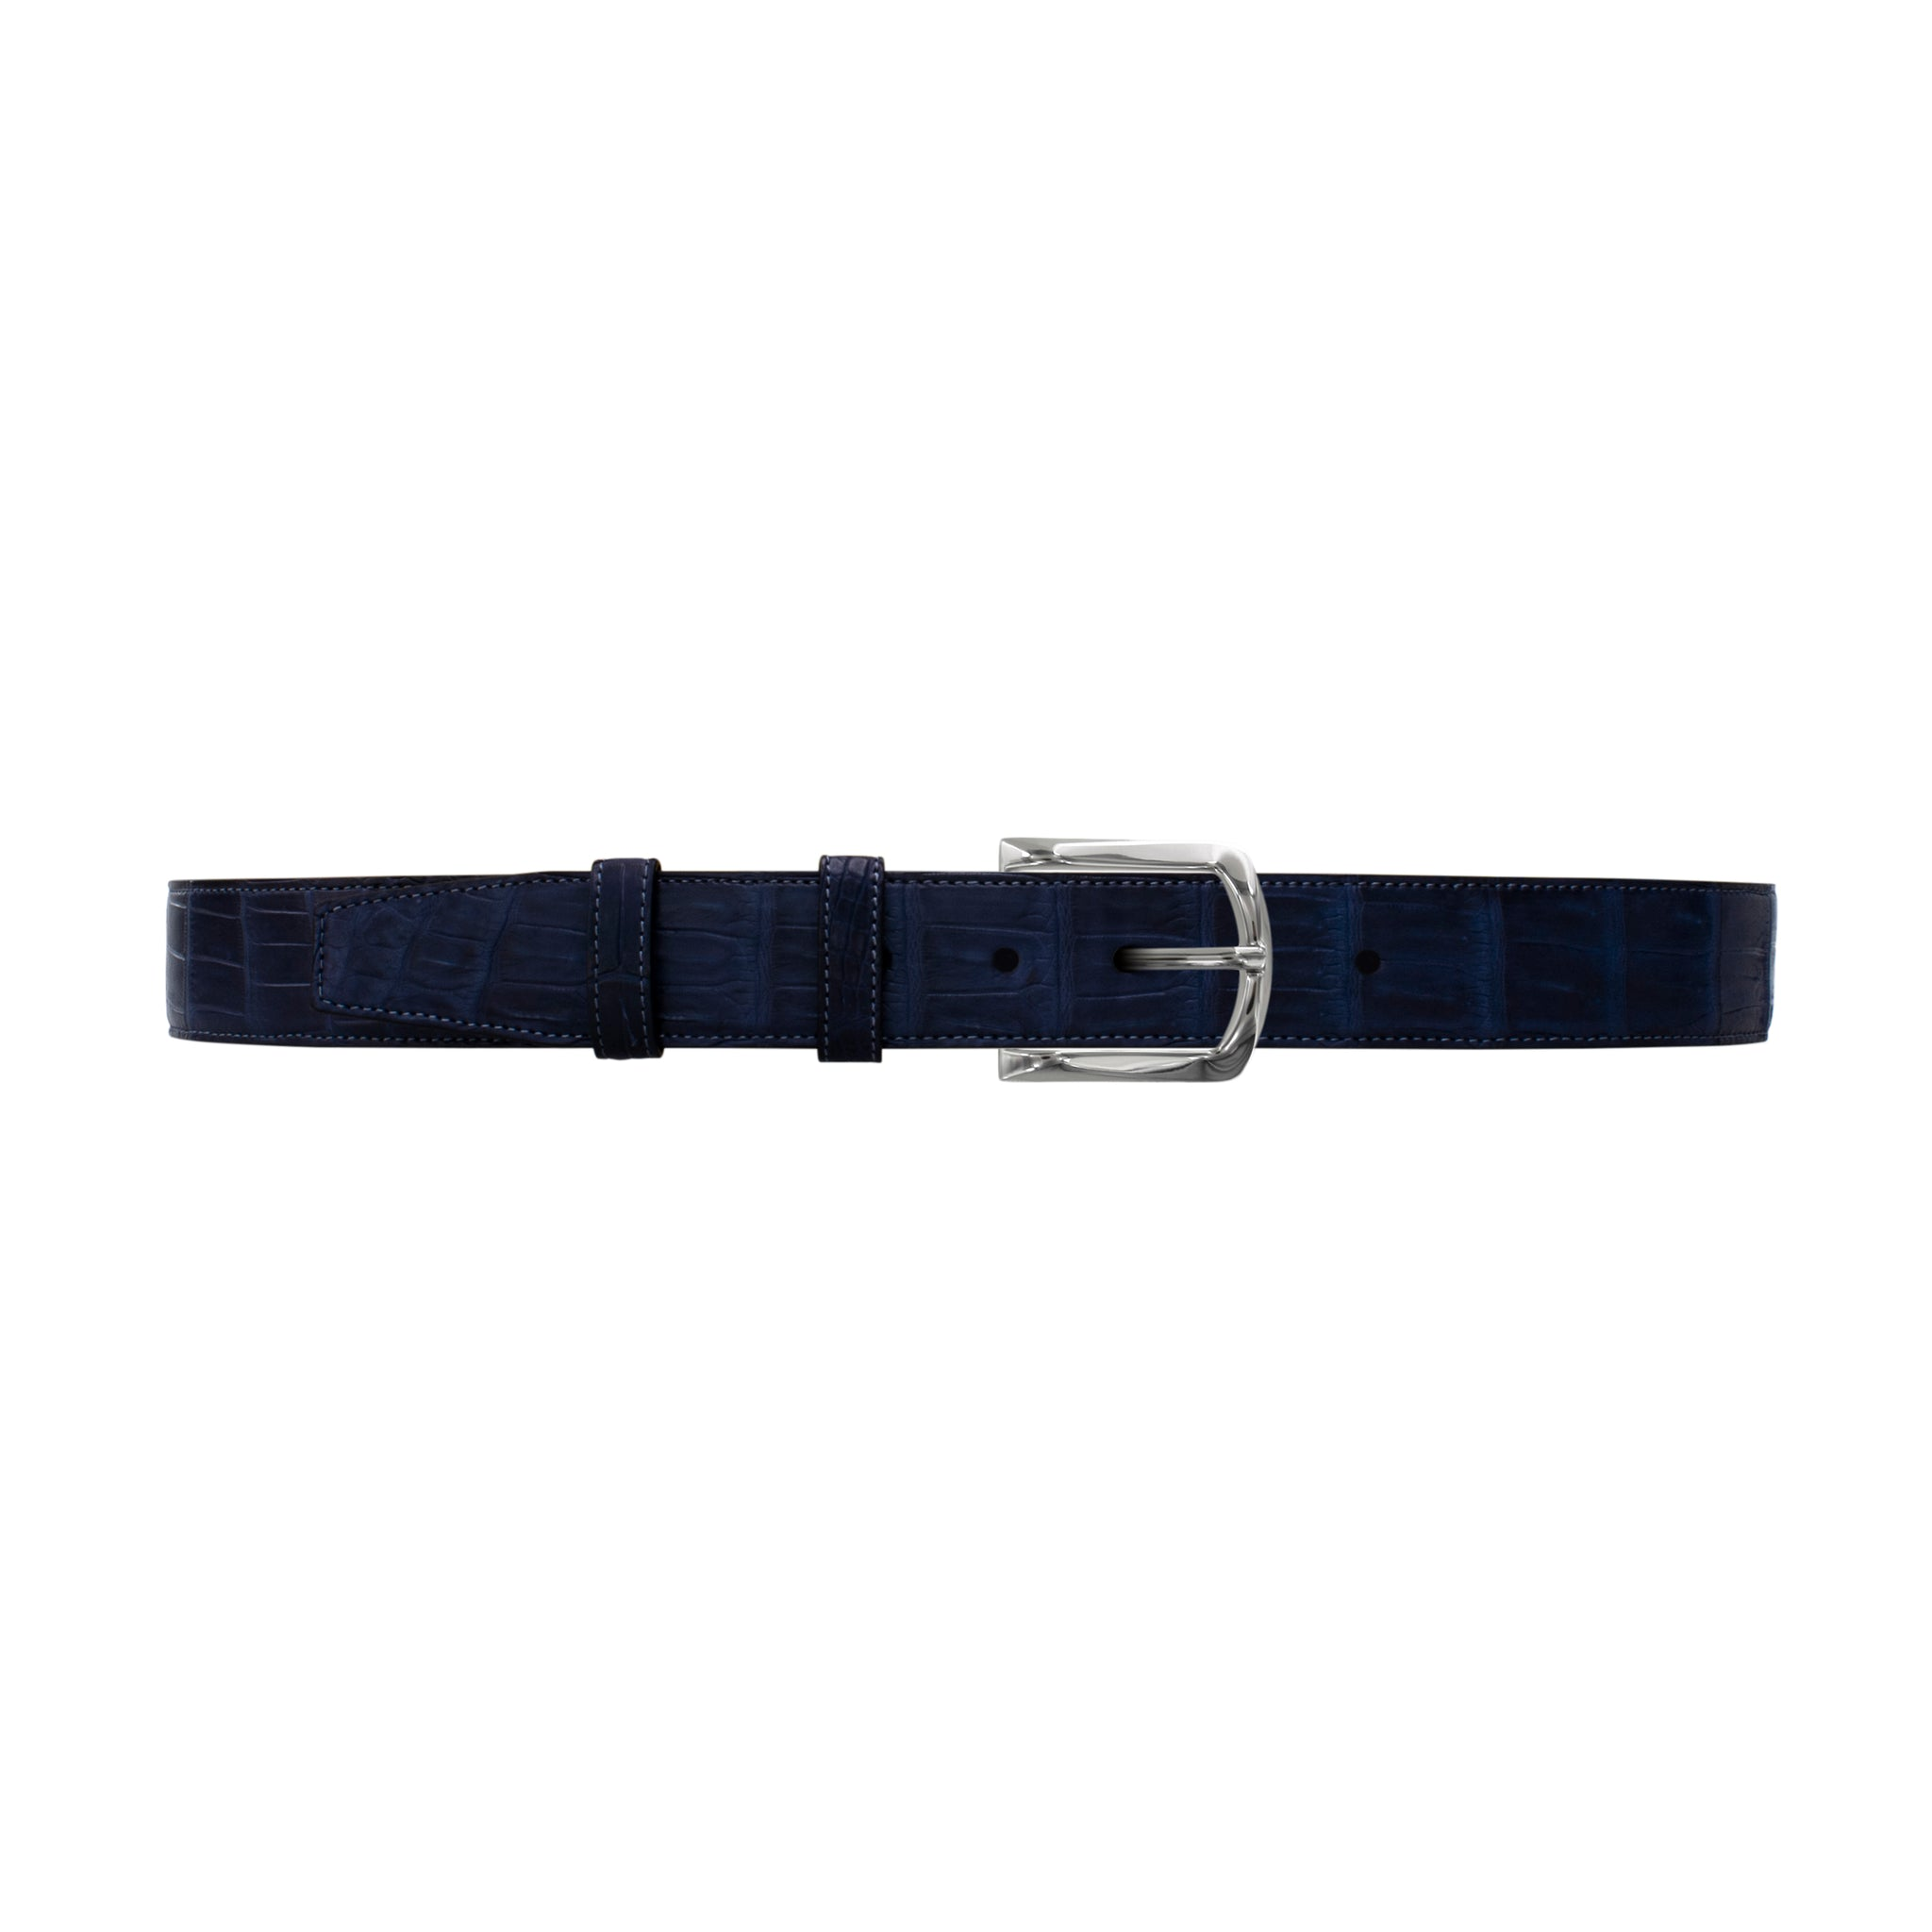 "1 1/2"" Midnight Classic Belt with Sutton Dress Buckle in Polished Nickel"